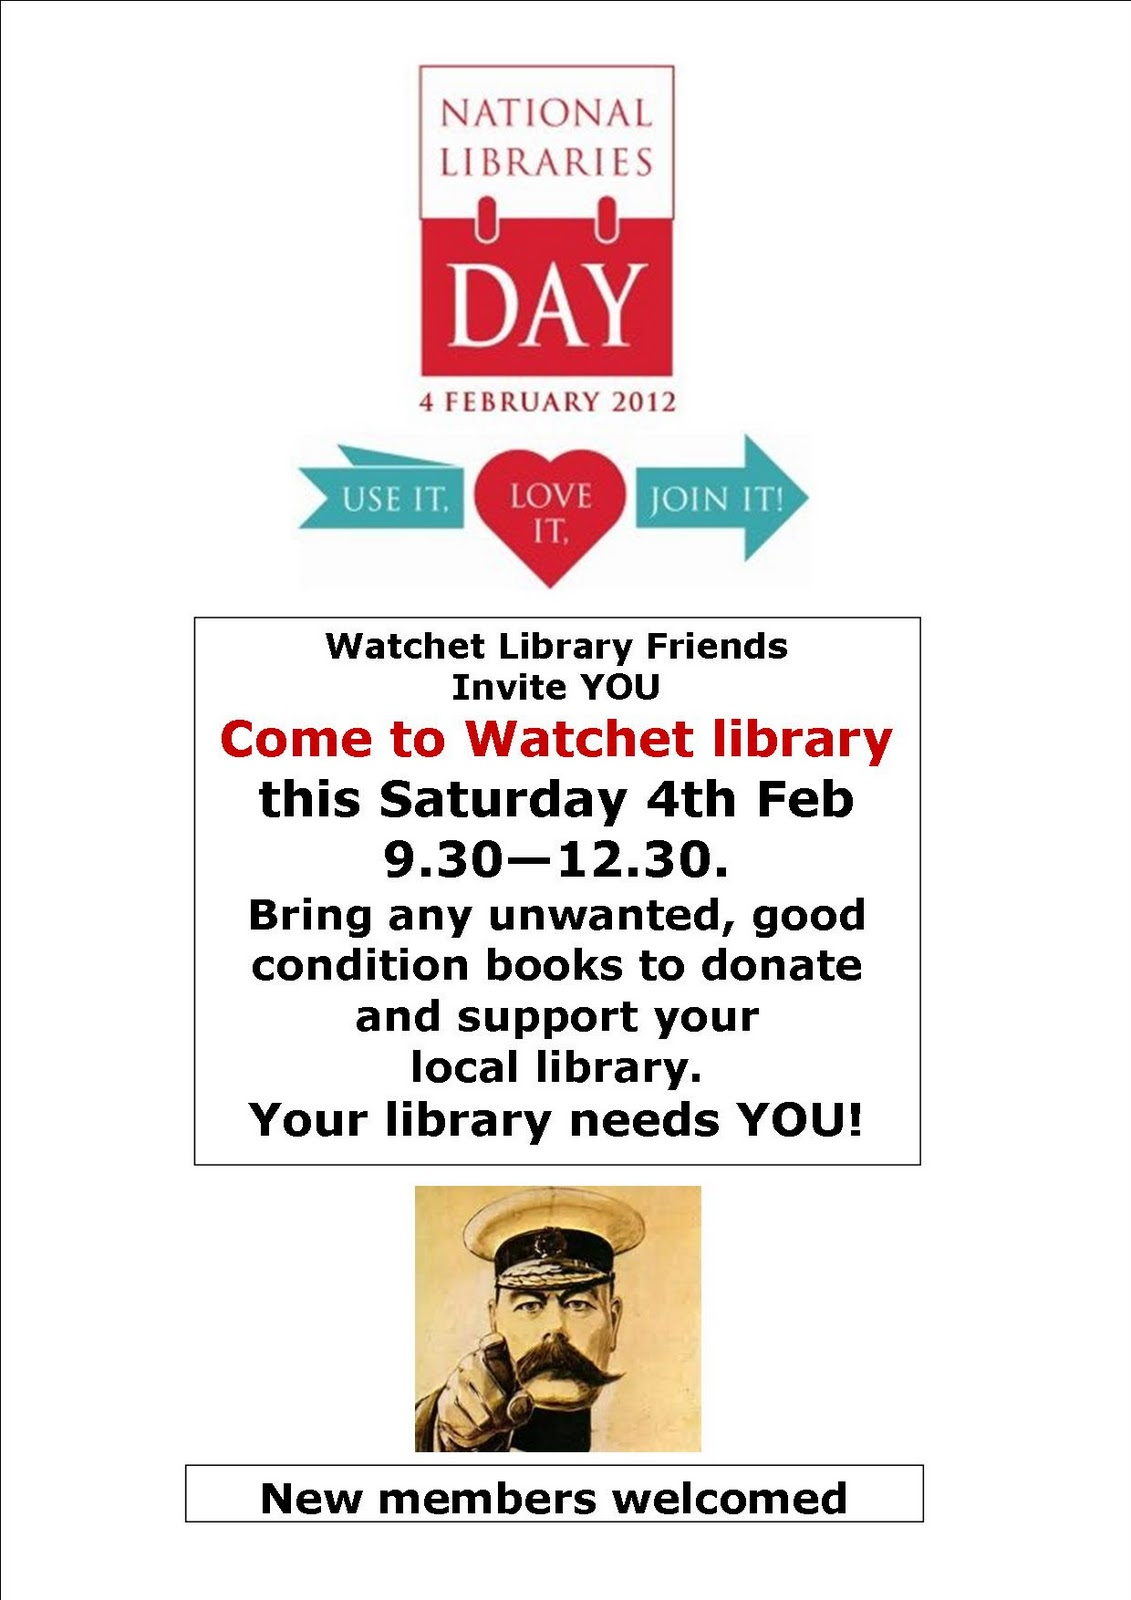 Public libraries news whats happening to your library page 103 somerset watchet library friends are doing more on the day than all of kent fandeluxe Gallery